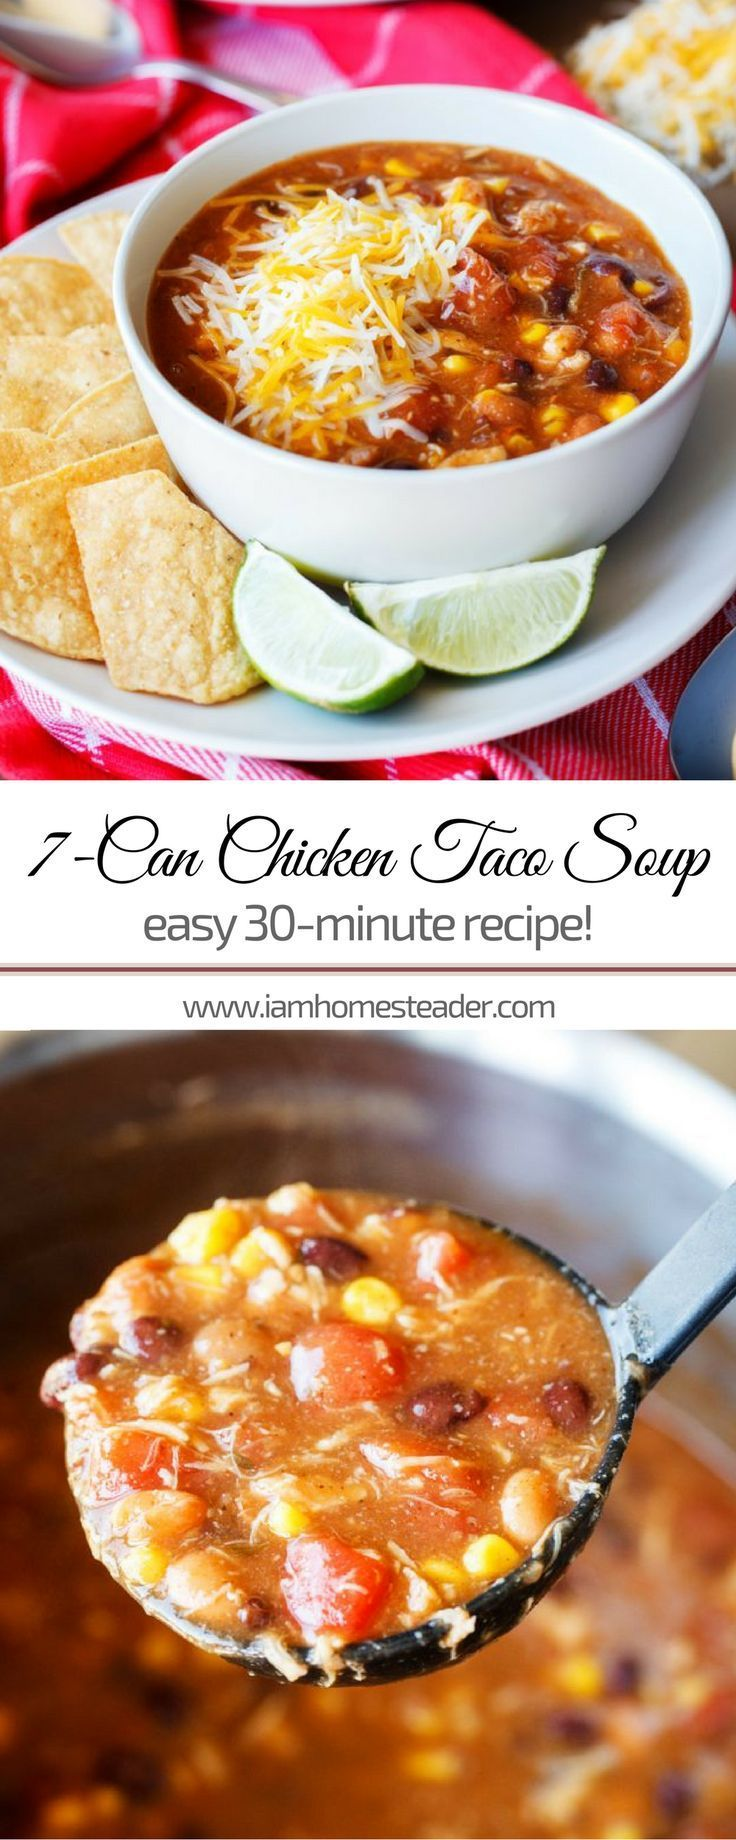 7 Can Chicken Taco Soup images